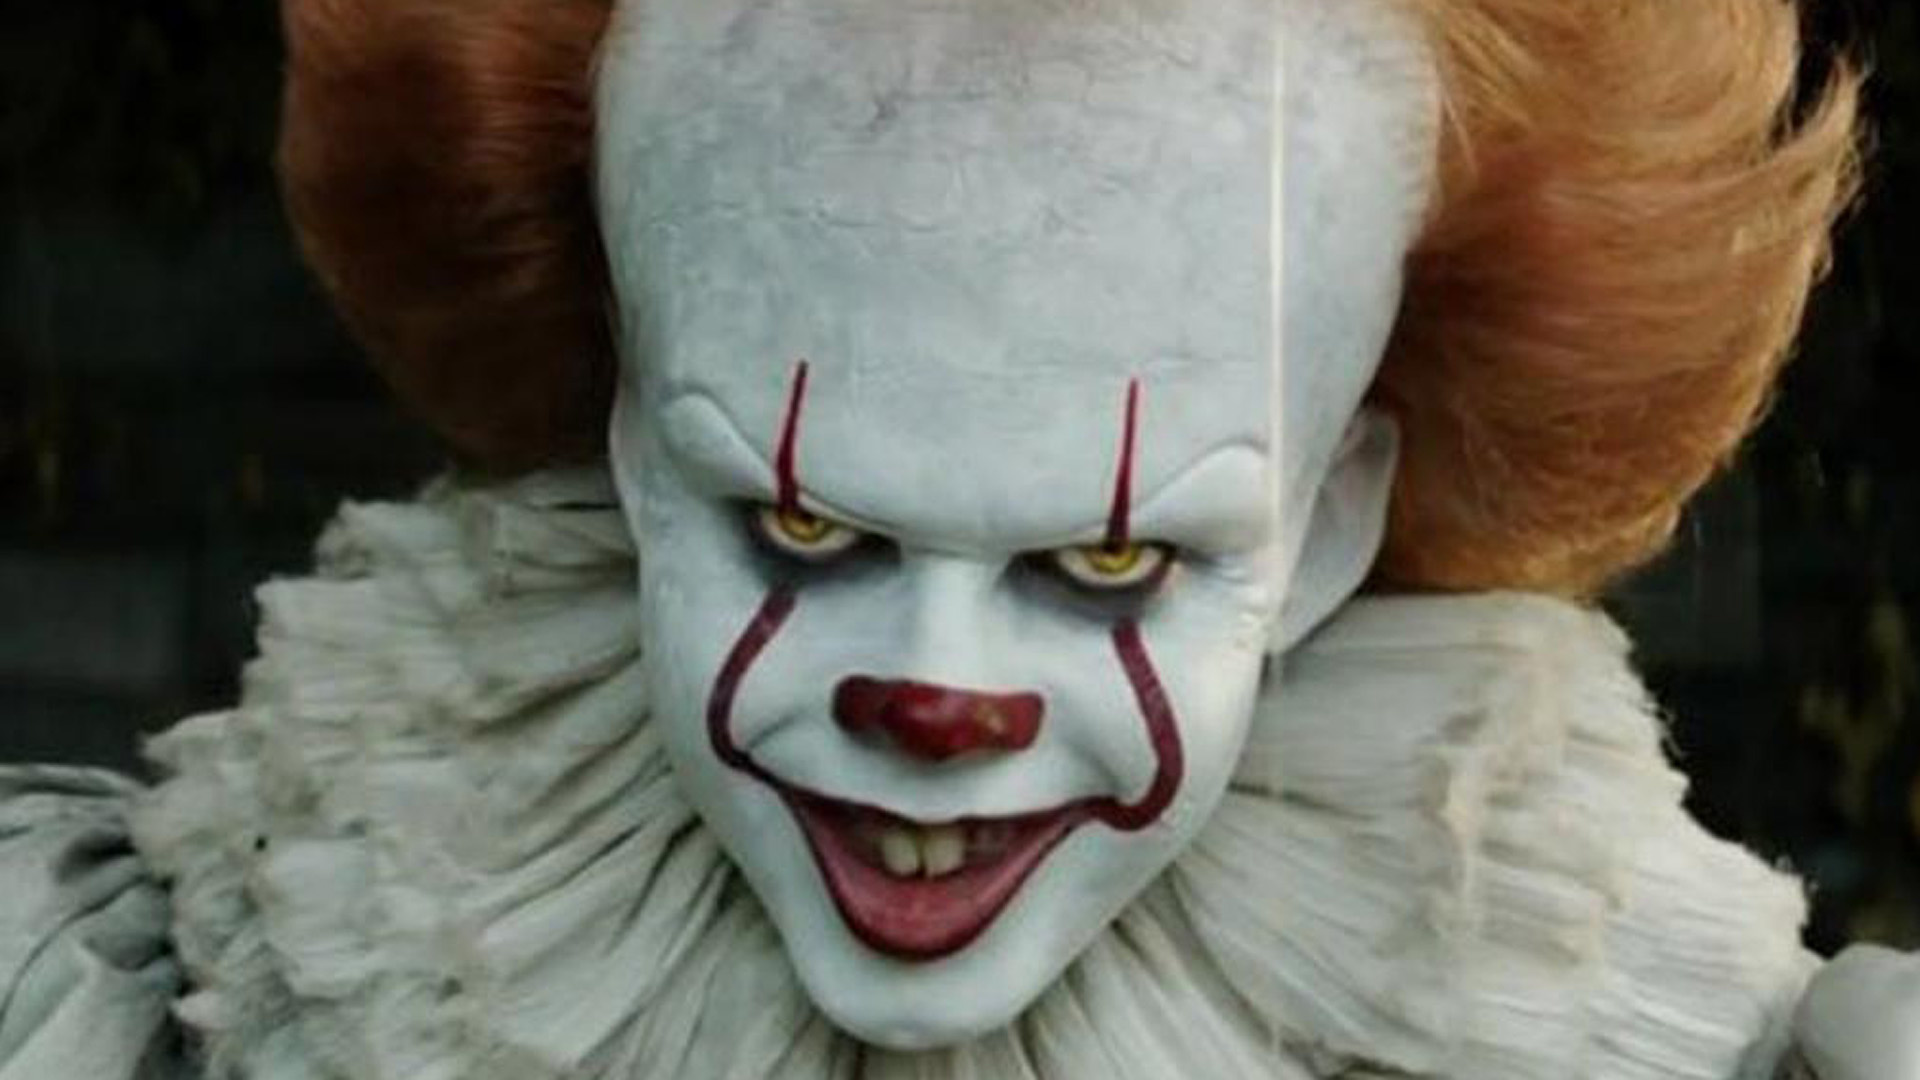 Screencap of Pennywise the Clown from IT